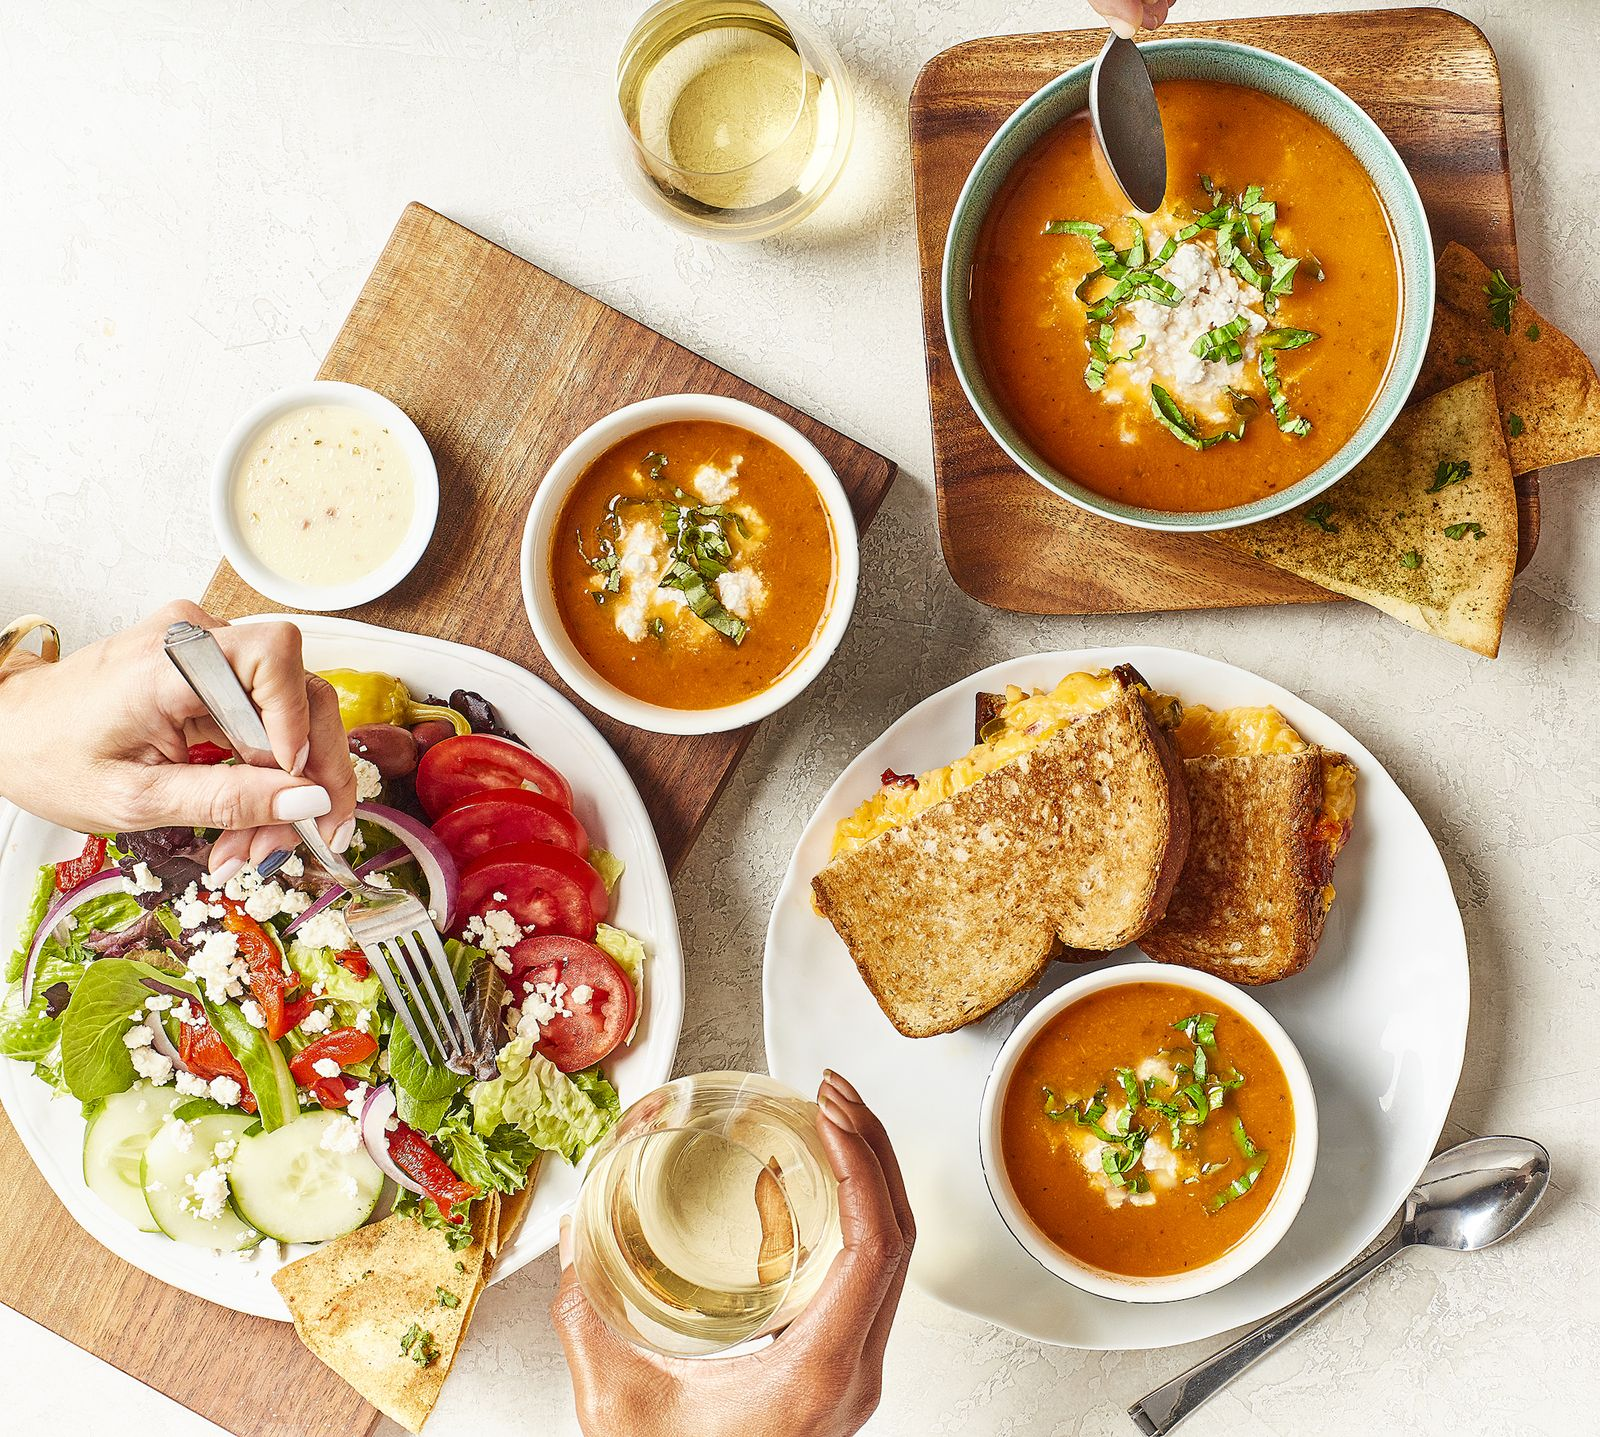 Taziki's Mediterranean Café Launches New Tomato-Basil Soup and Grilled Pimento Cheese